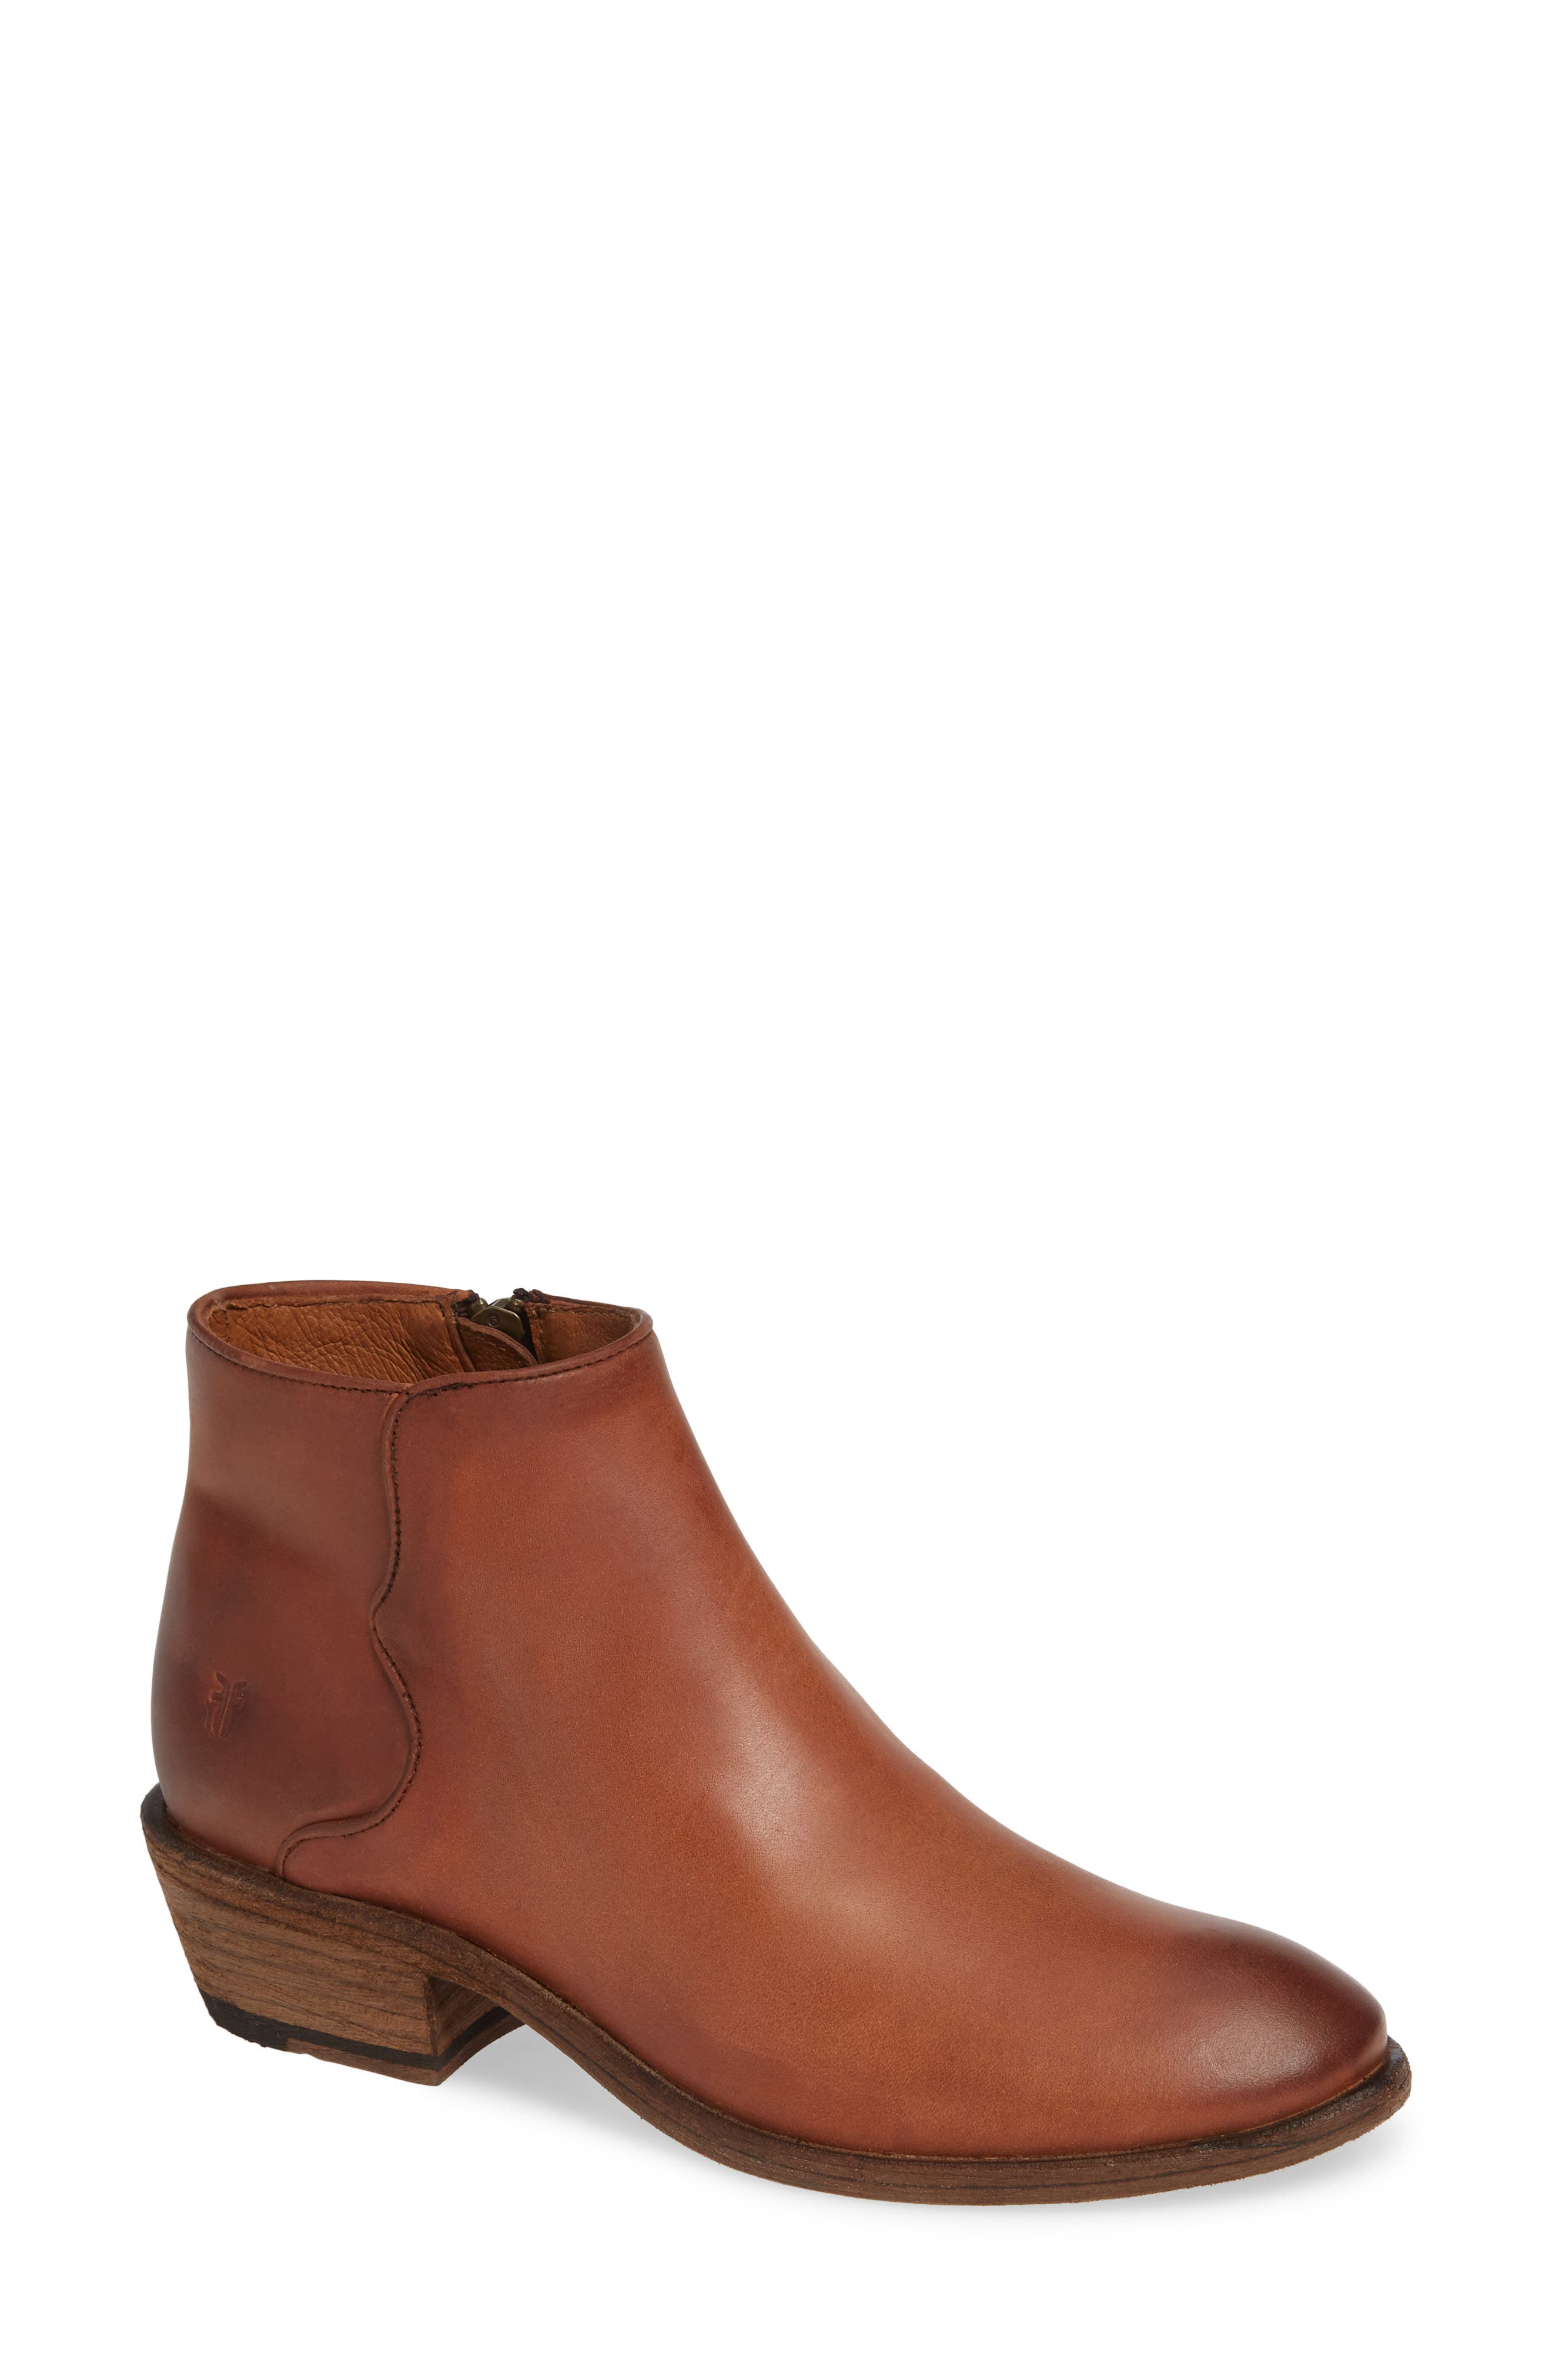 Frye Carson Piping Bootie- Brown